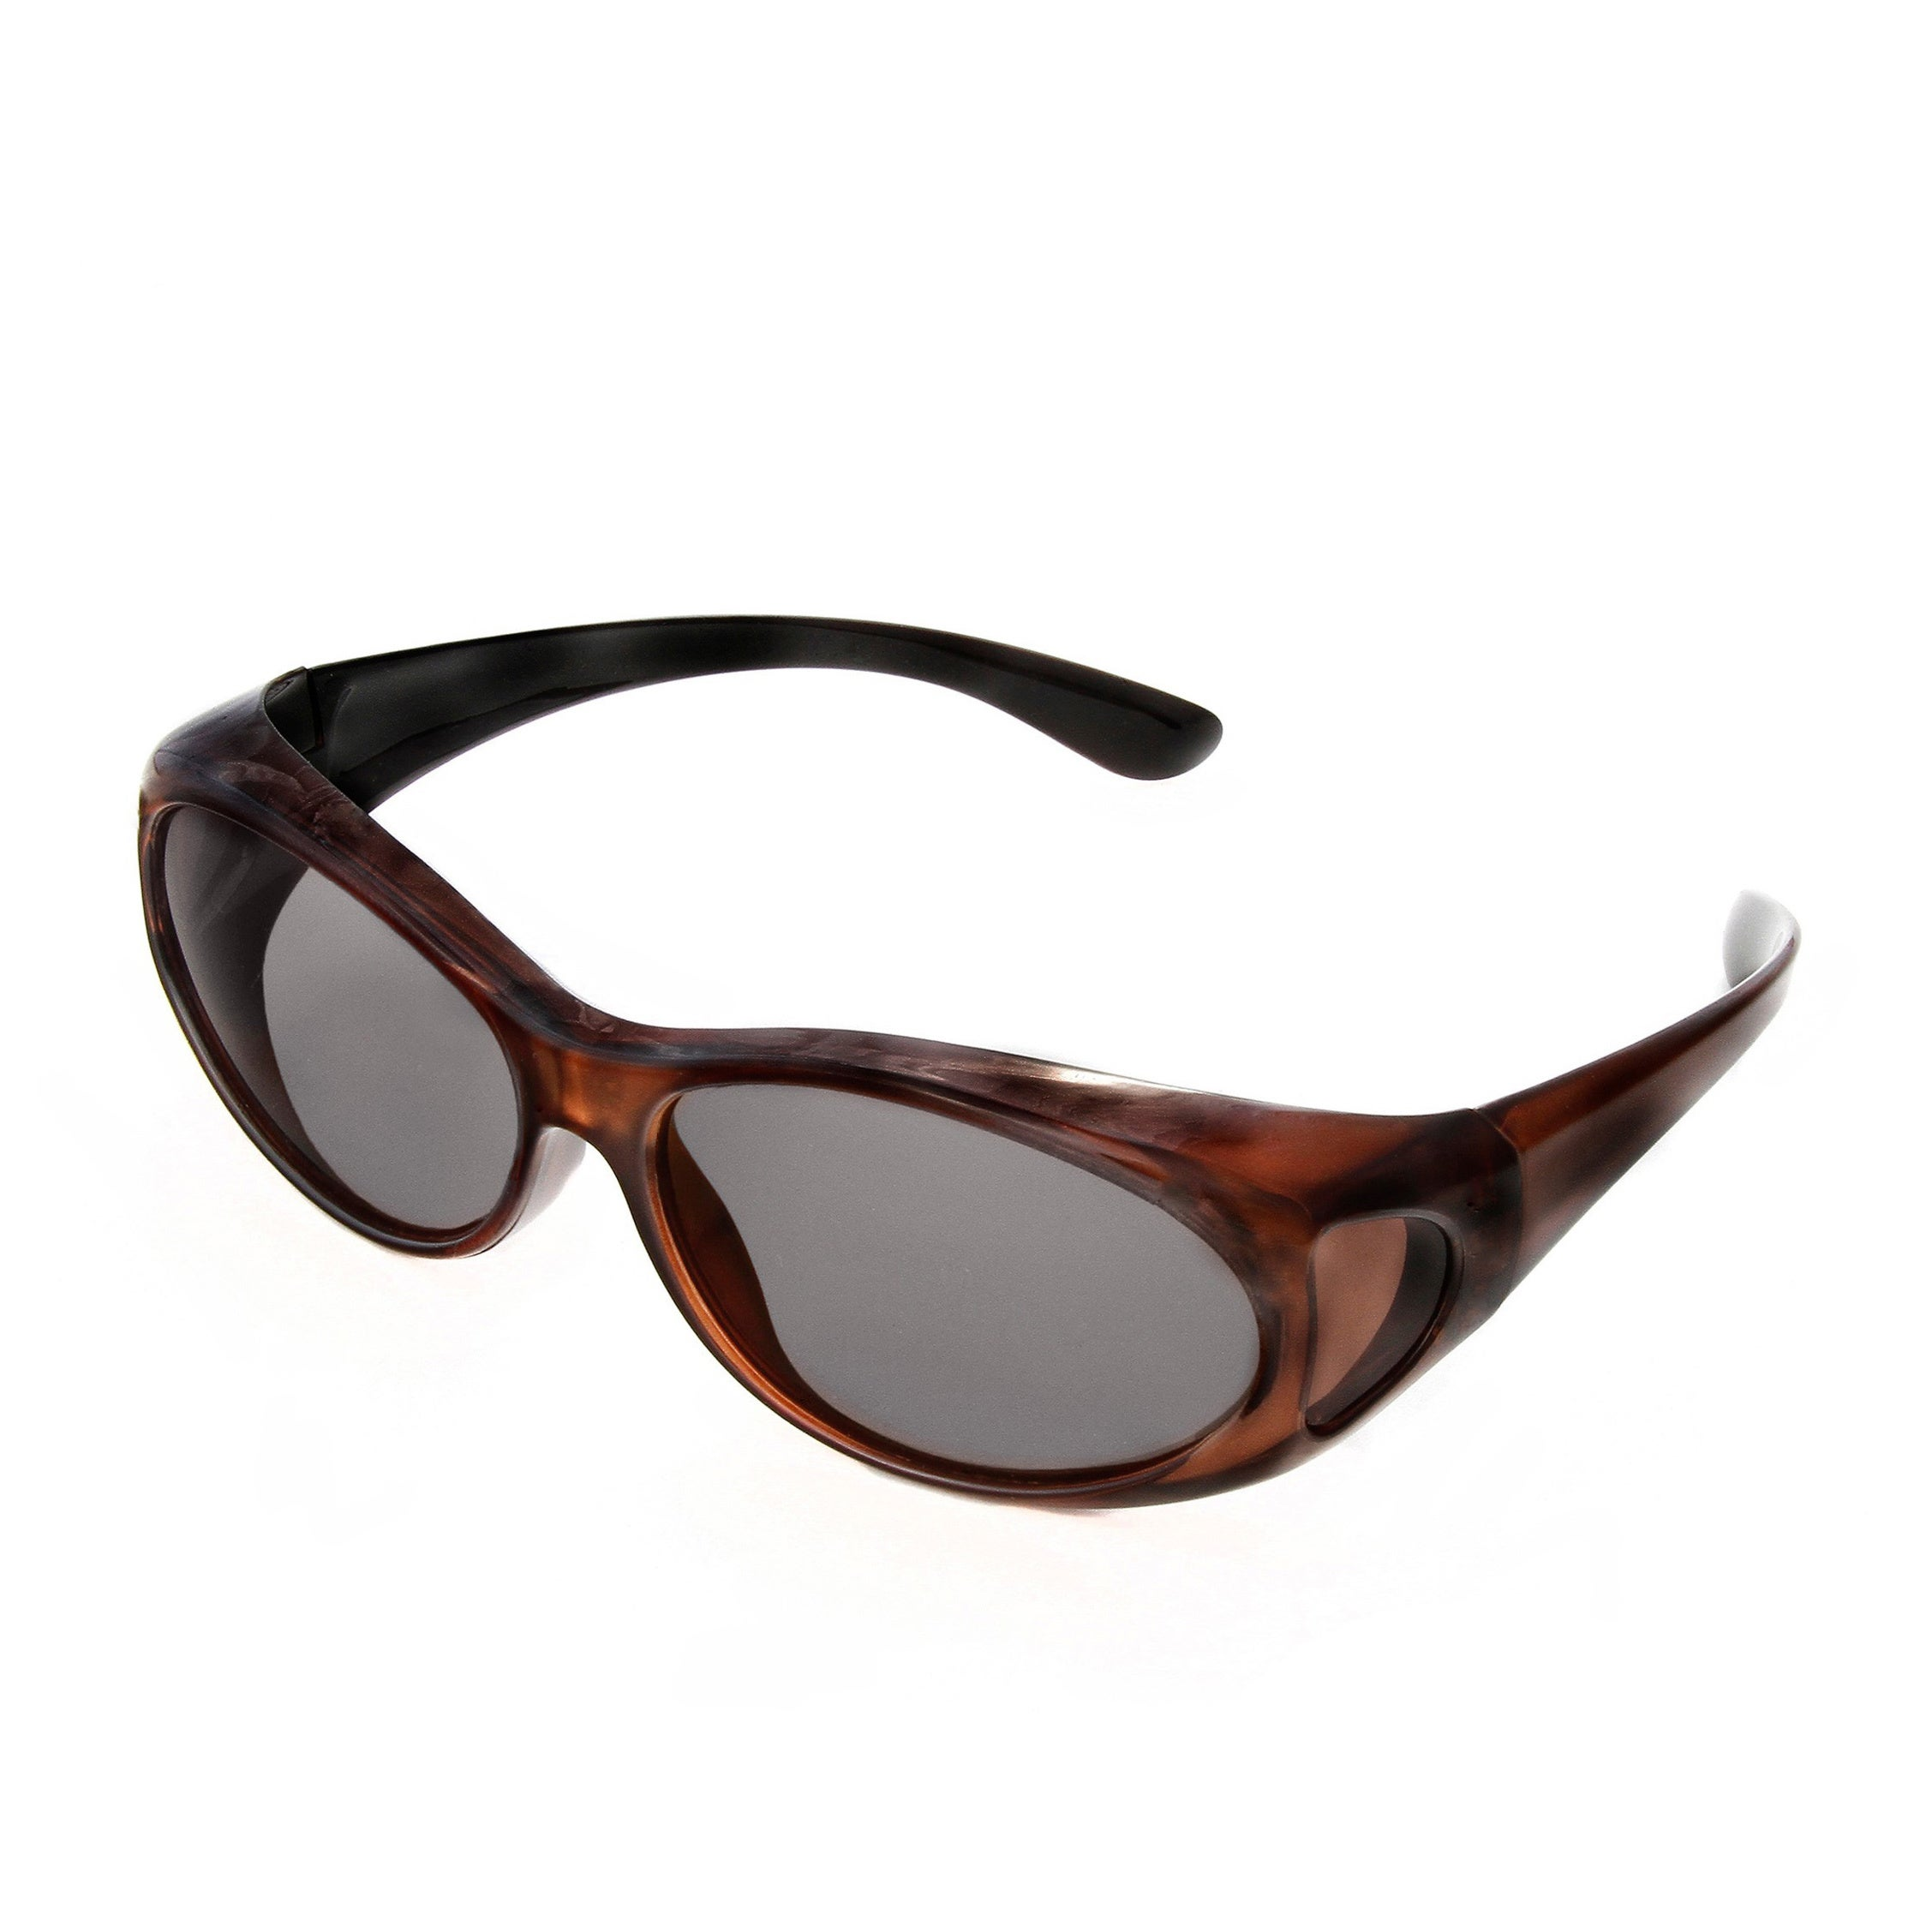 d836c86300 Shop Hot Optix Women s Polarized Over-the-Glass Wrap Sunglass - Free  Shipping On Orders Over  45 - Overstock - 7628890